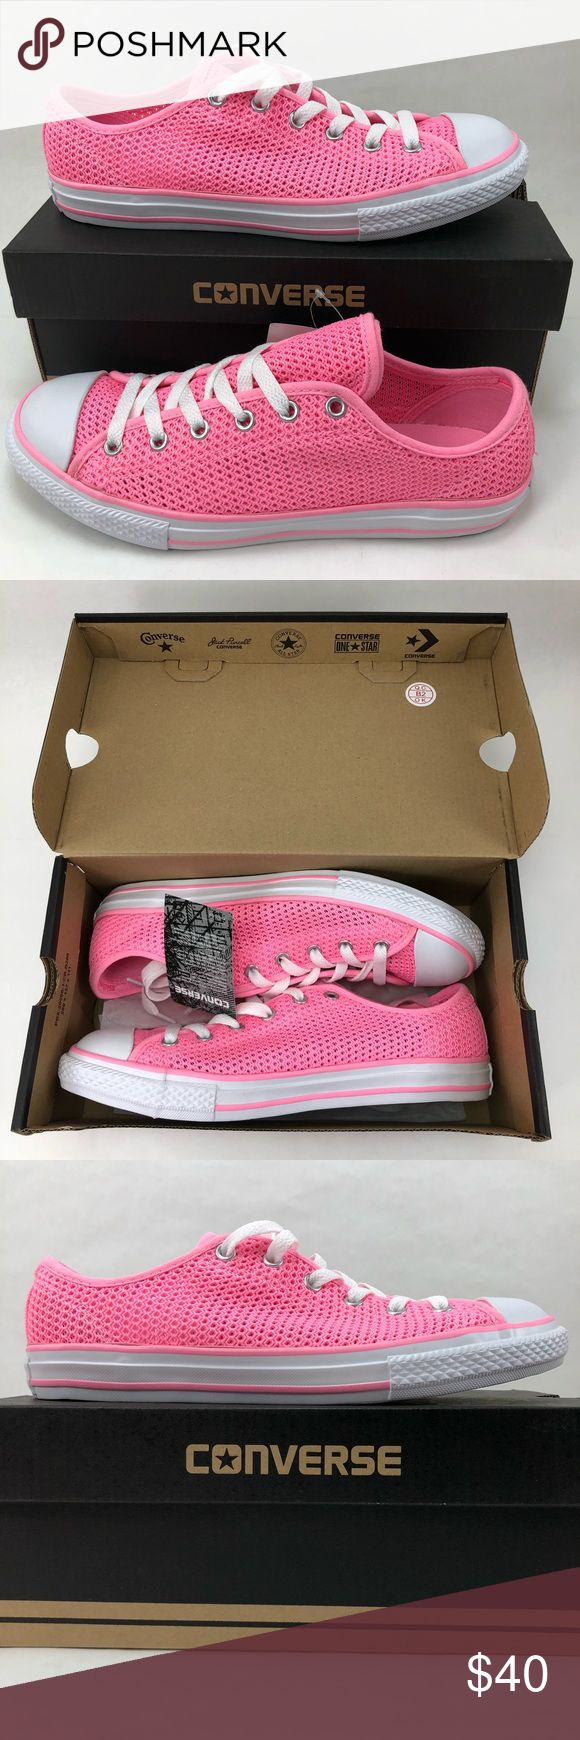 Chuck Taylor All Star Mesh girls Youth shoes 6 NEW Hot pink juniors big kids size 6 shoes. These shoes translate to a women's size 7.5. Please be sure of your sizing in chuck Taylor all star shoes. These RARE shoes have a double tongue and mesh upper body. Converse Shoes Sneakers